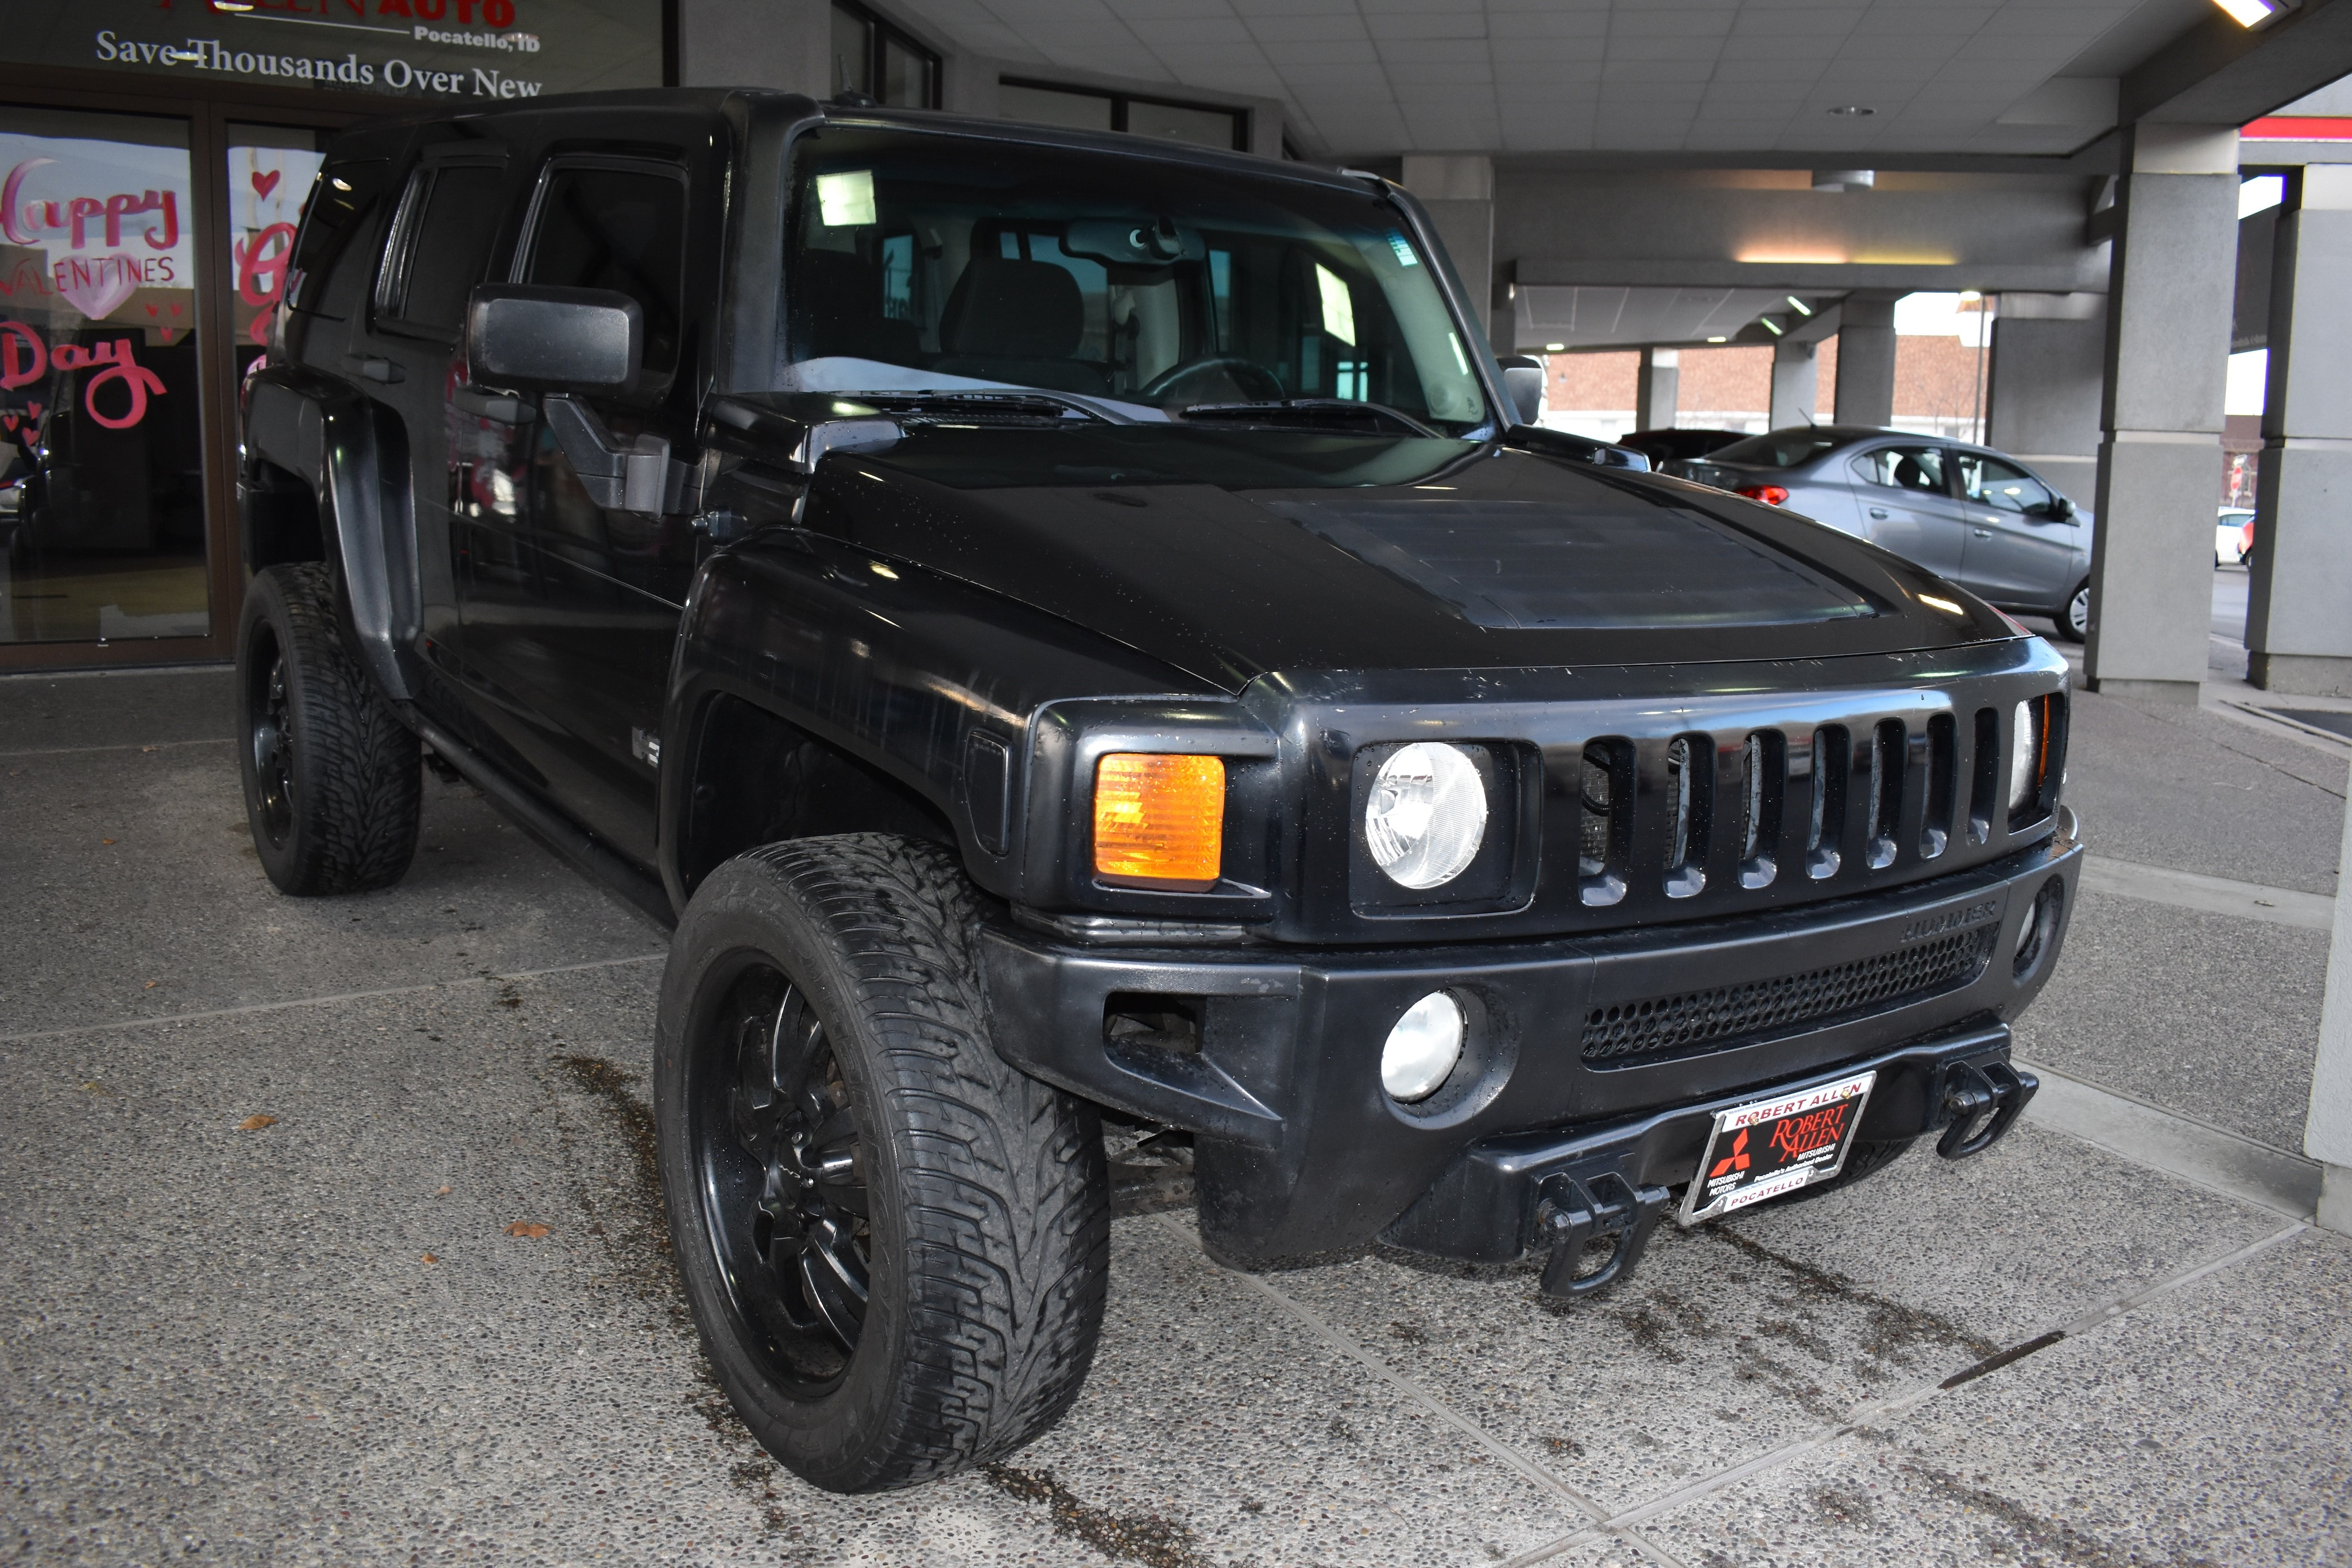 2006 Hummer H3 Parts Diagrams Used 2006 Hummer H3 Suv for Sale Of 2006 Hummer H3 Parts Diagrams